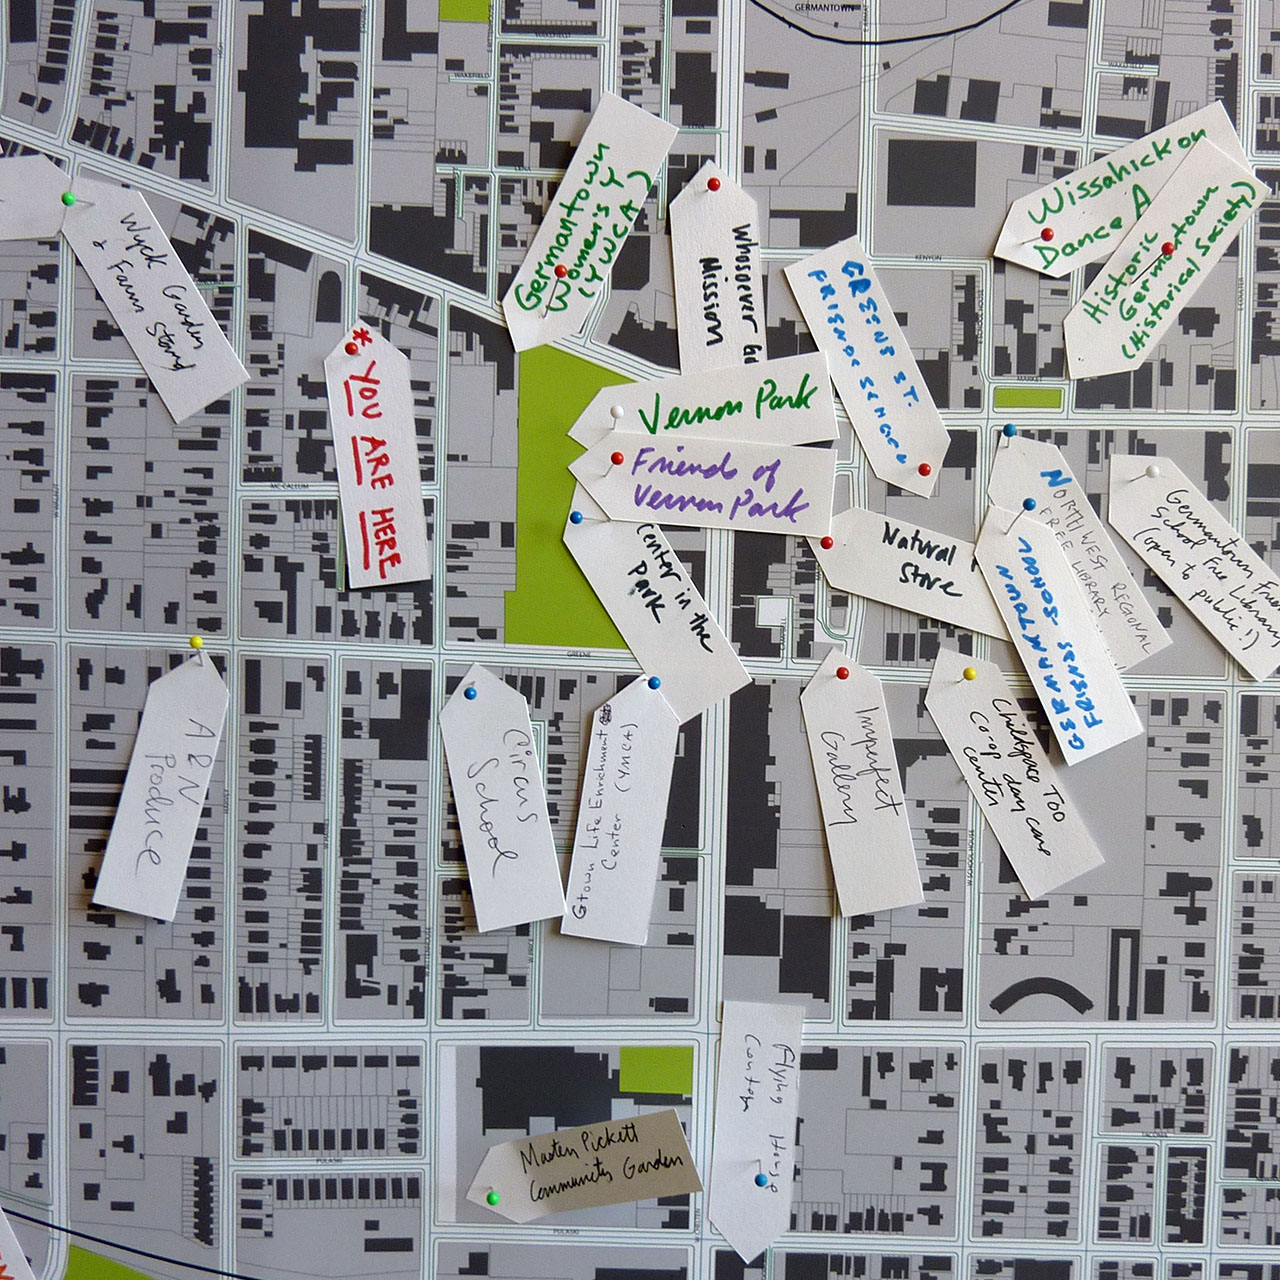 Map of Germantown, Philadelphia with pins